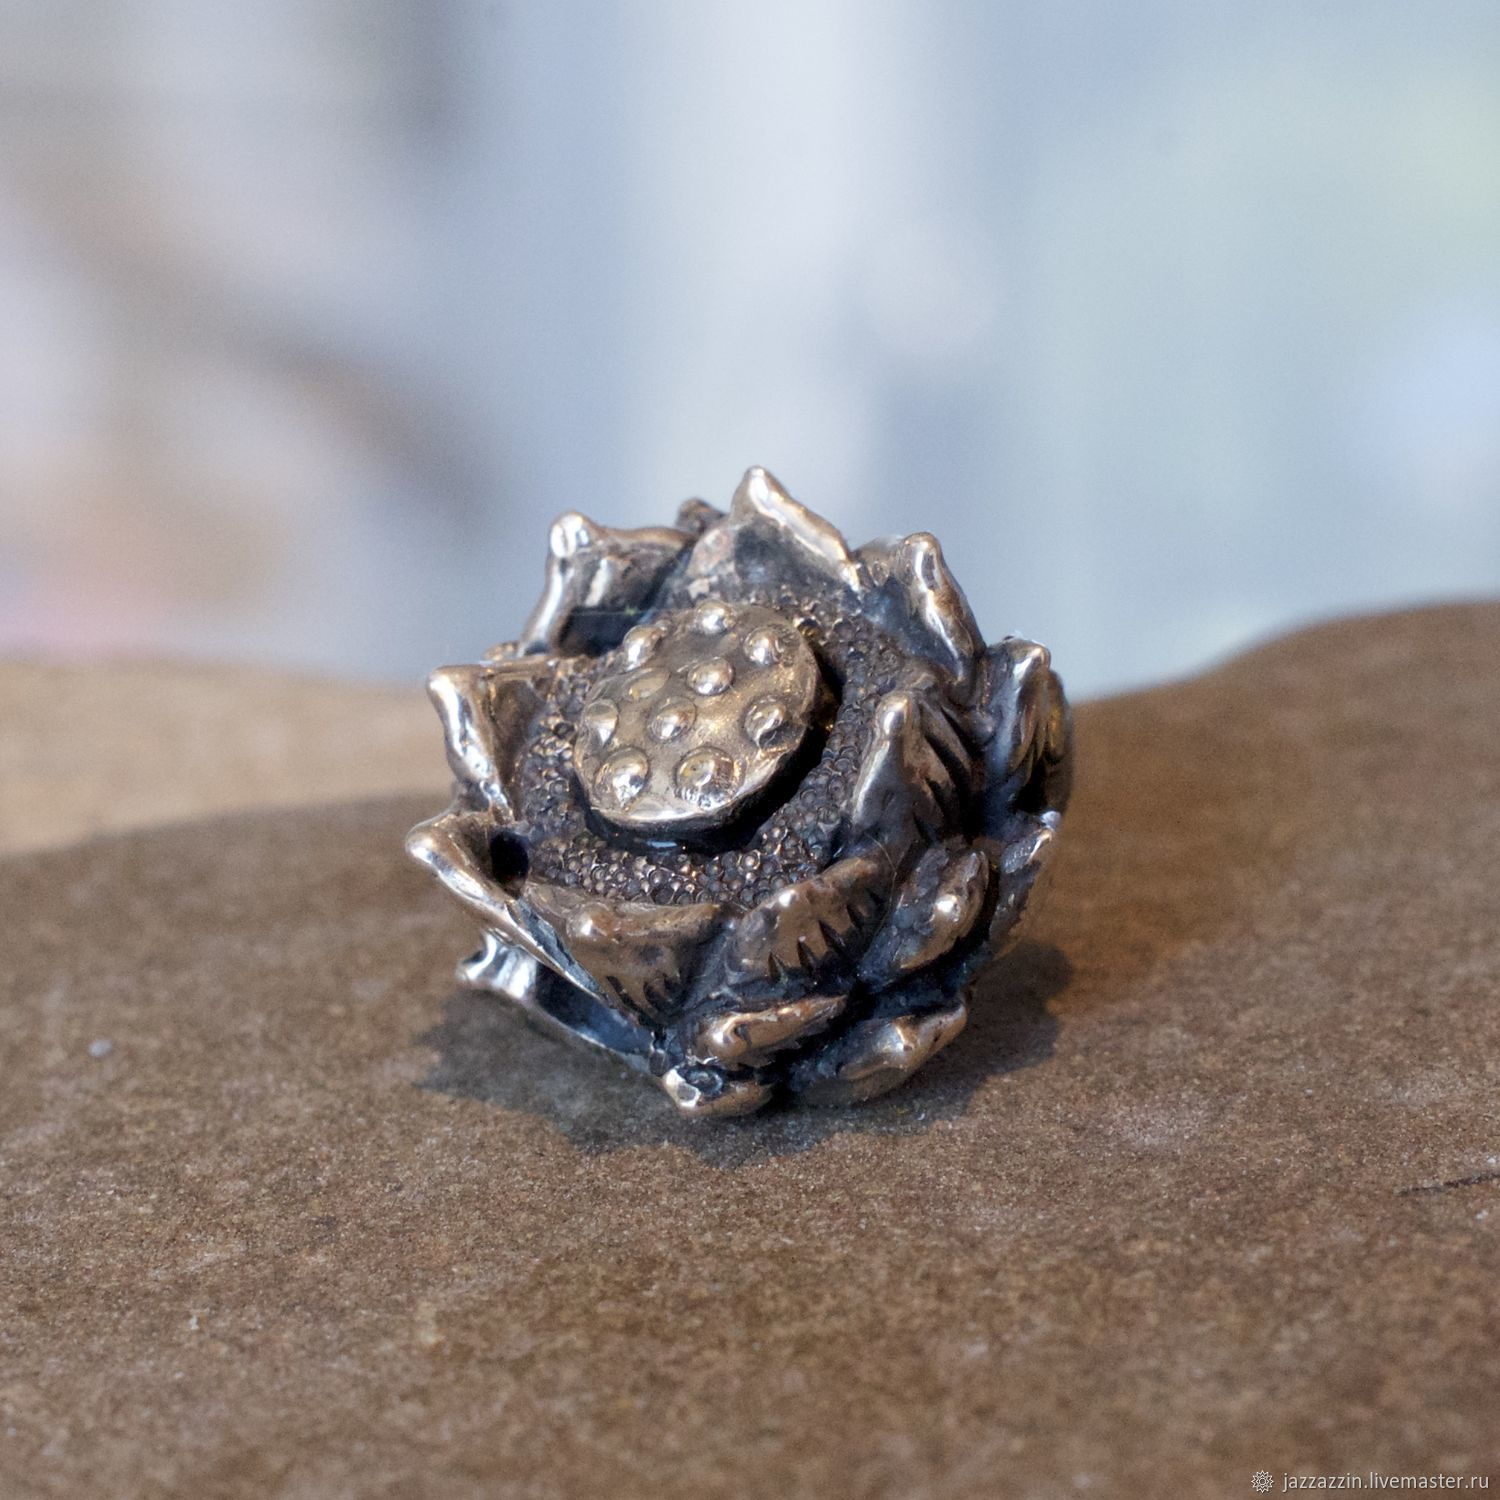 Lotus Flower Charm Shop Online On Livemaster With Shipping